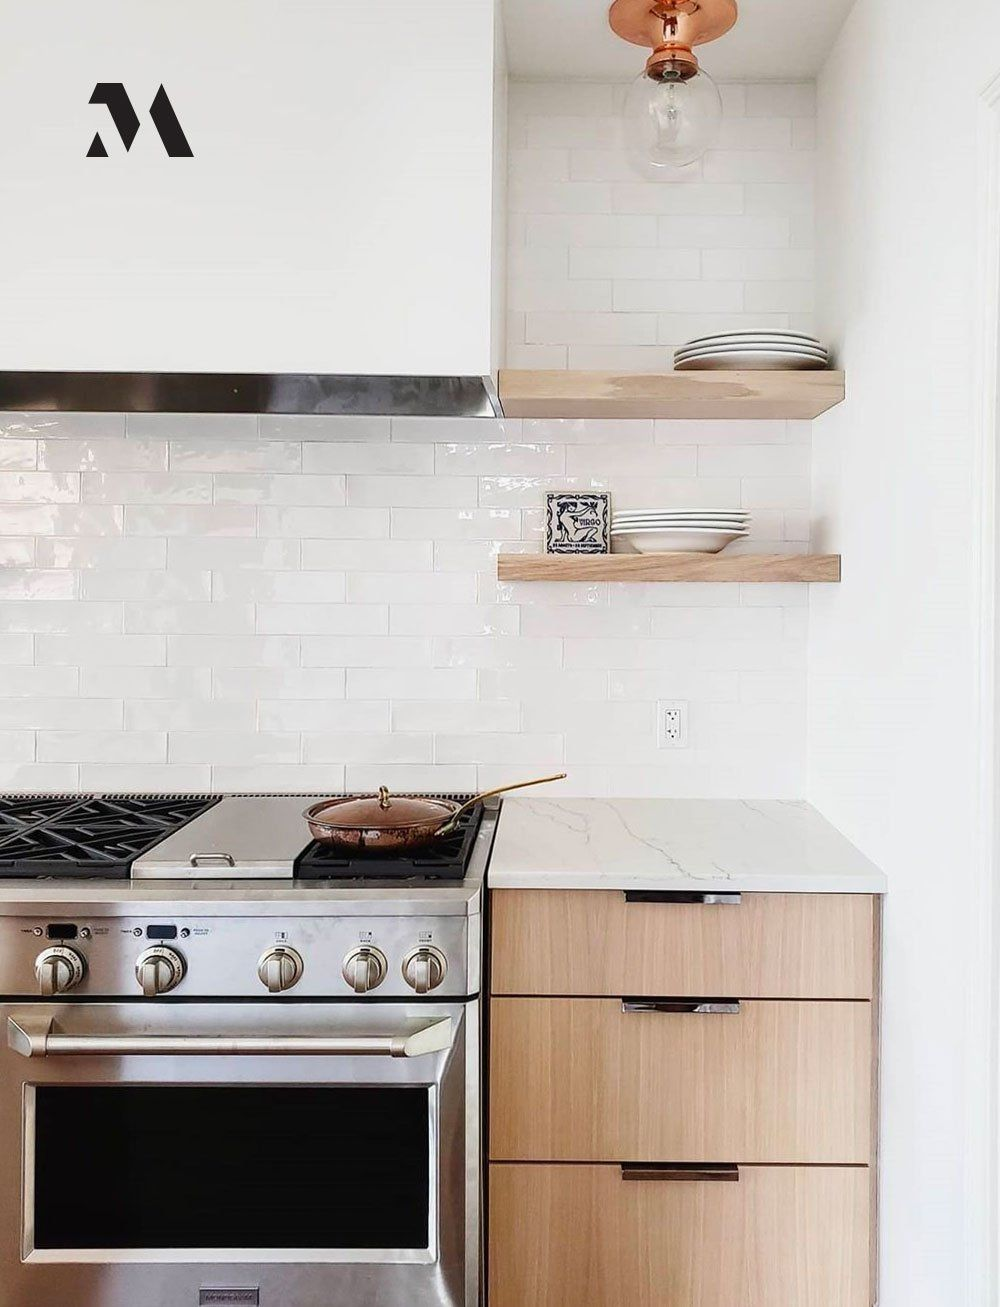 Just A Small Glimpse Of This Kitchen With Monogram Appliances Designed By Alida Coury Interiors In 2020 Professional Kitchen Appliances Kitchen Professional Kitchen